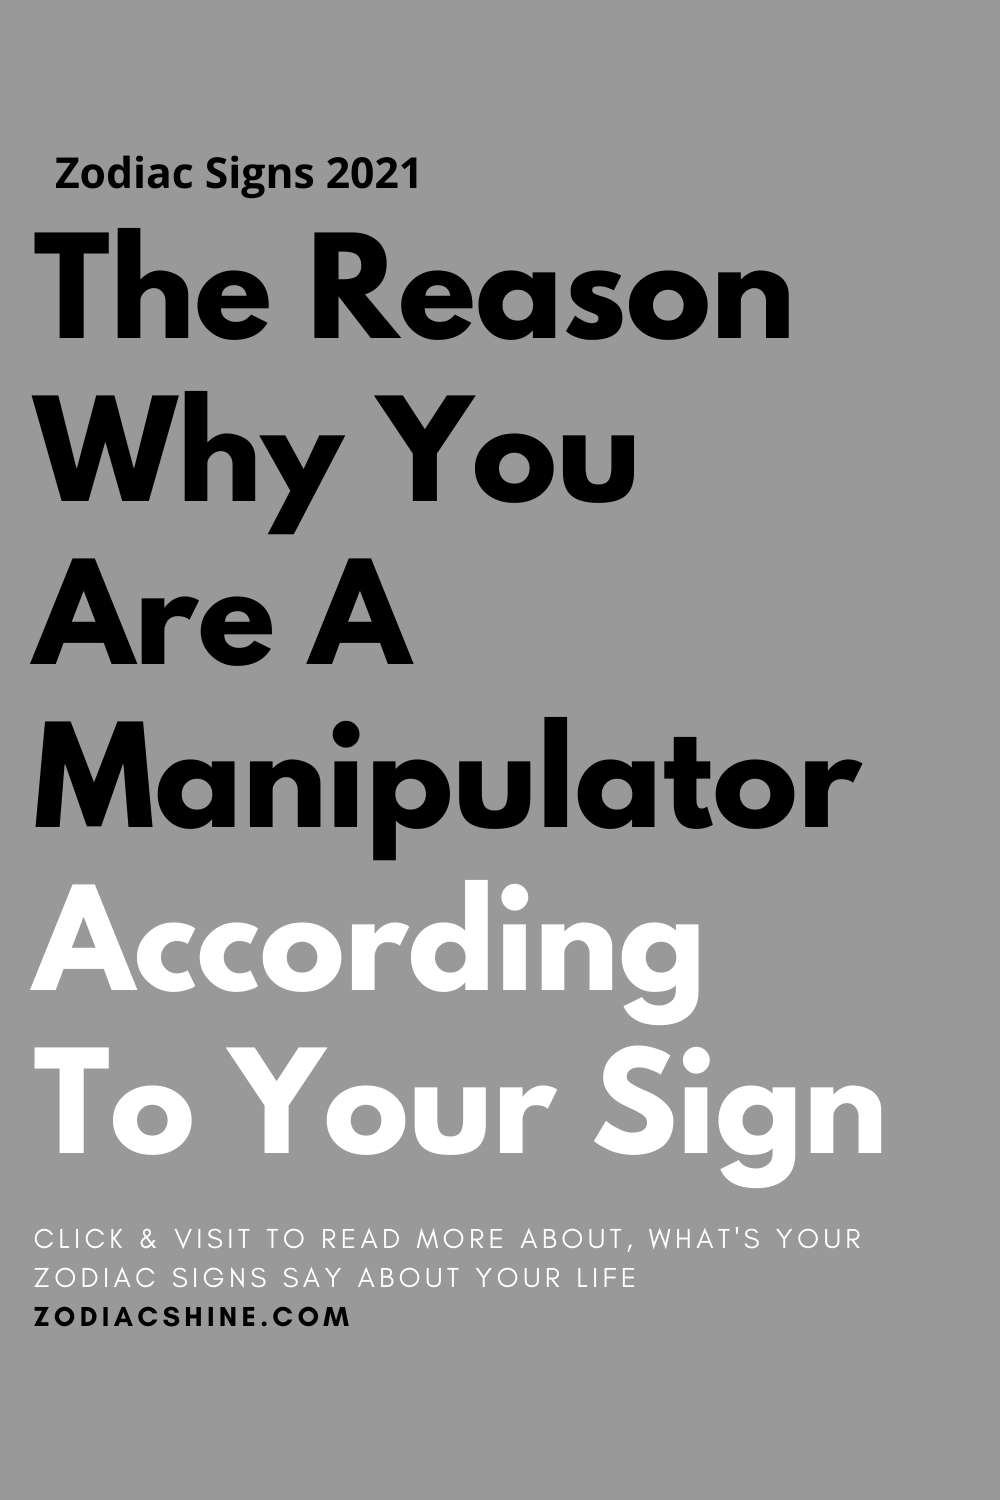 The Reason Why You Are A Manipulator According To Your Sign